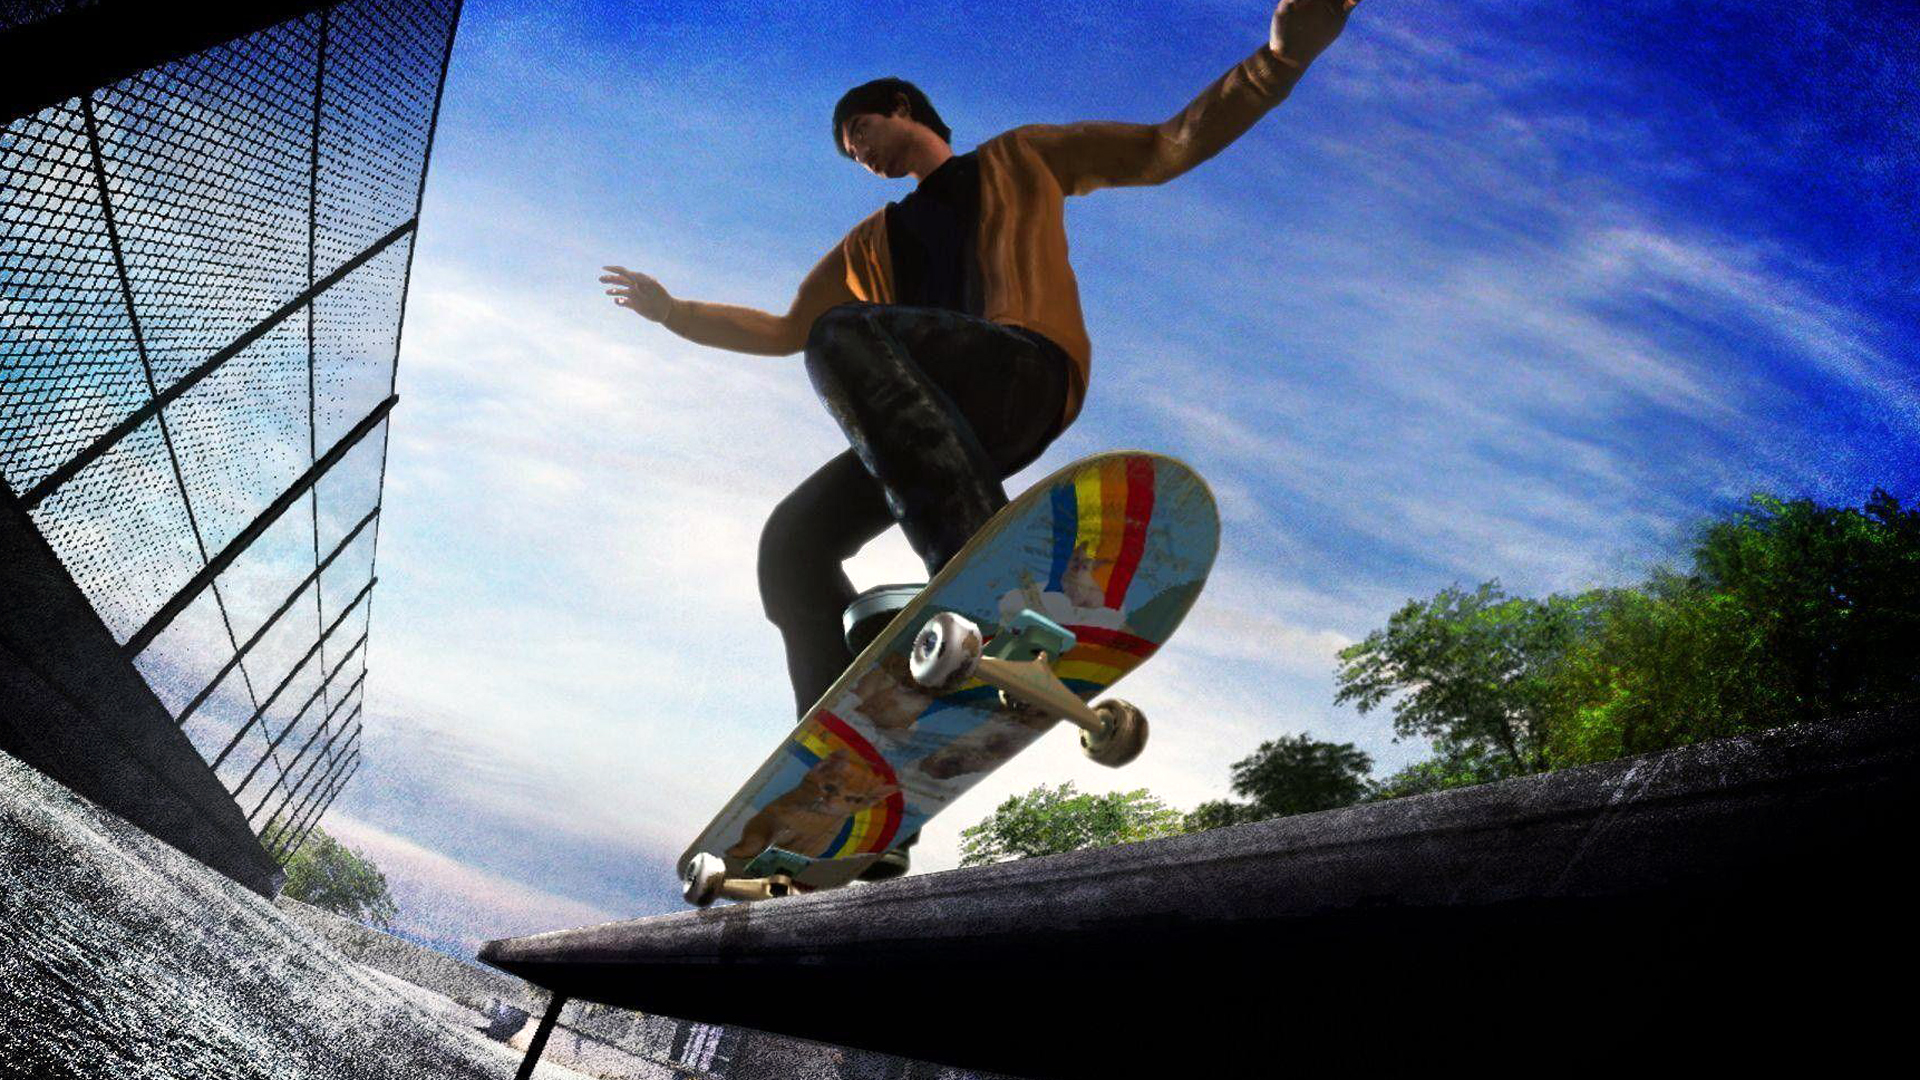 Skate is coming to PC for the first time, definitely